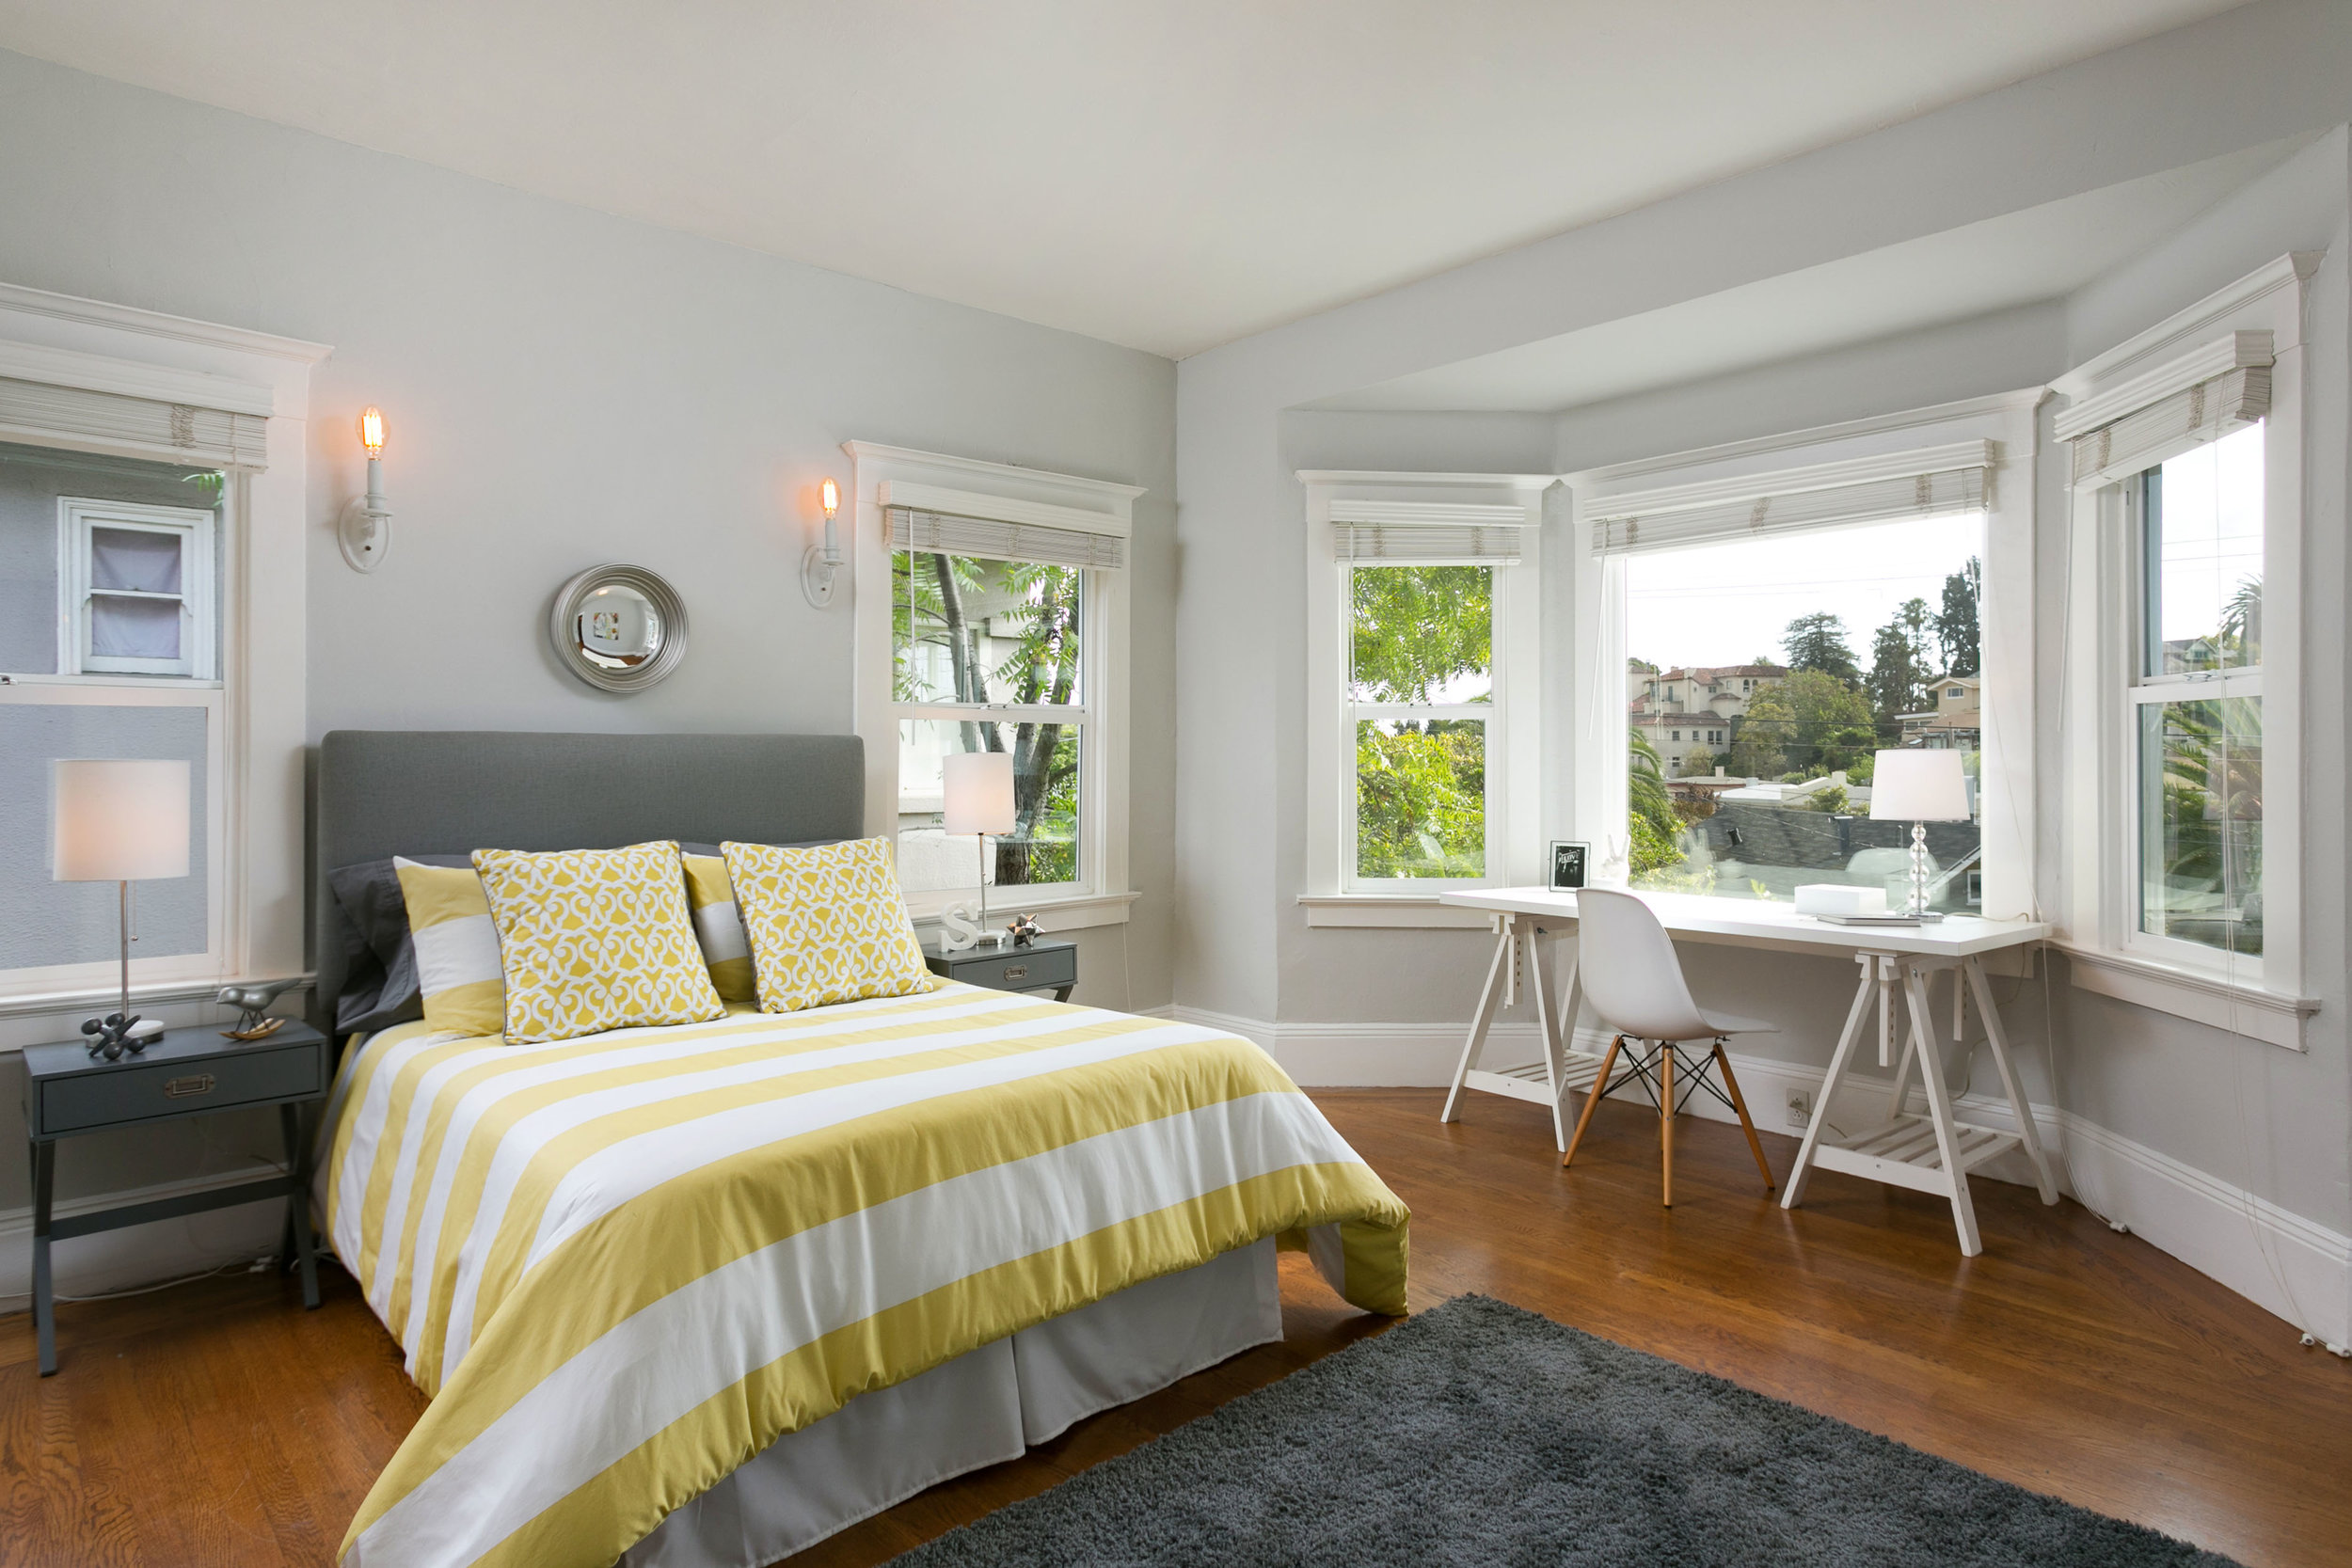 SUNNY-SIDE UP FRONT BEDROOM